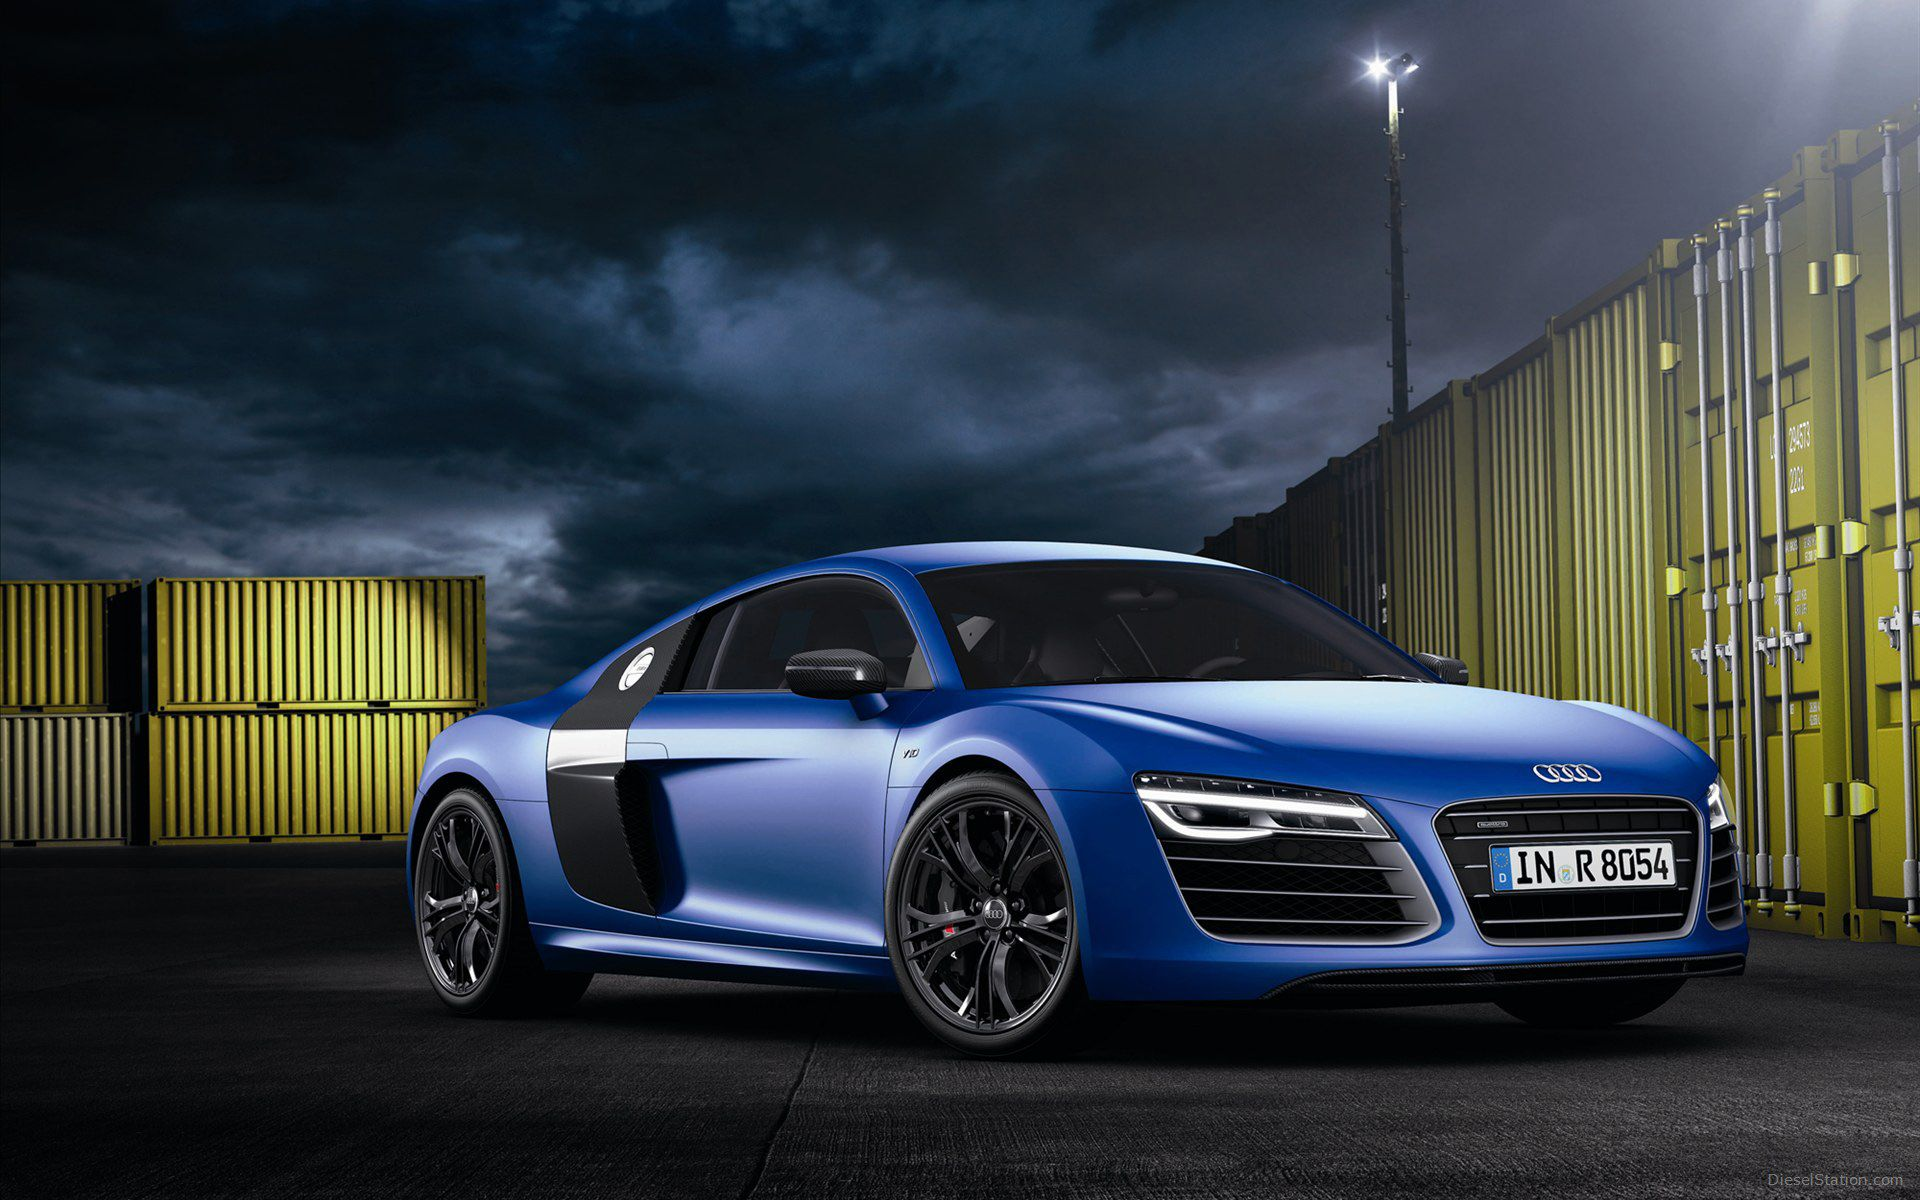 New audi r8 wallpapers get free top quality new audi r8 wallpapers for your desktop